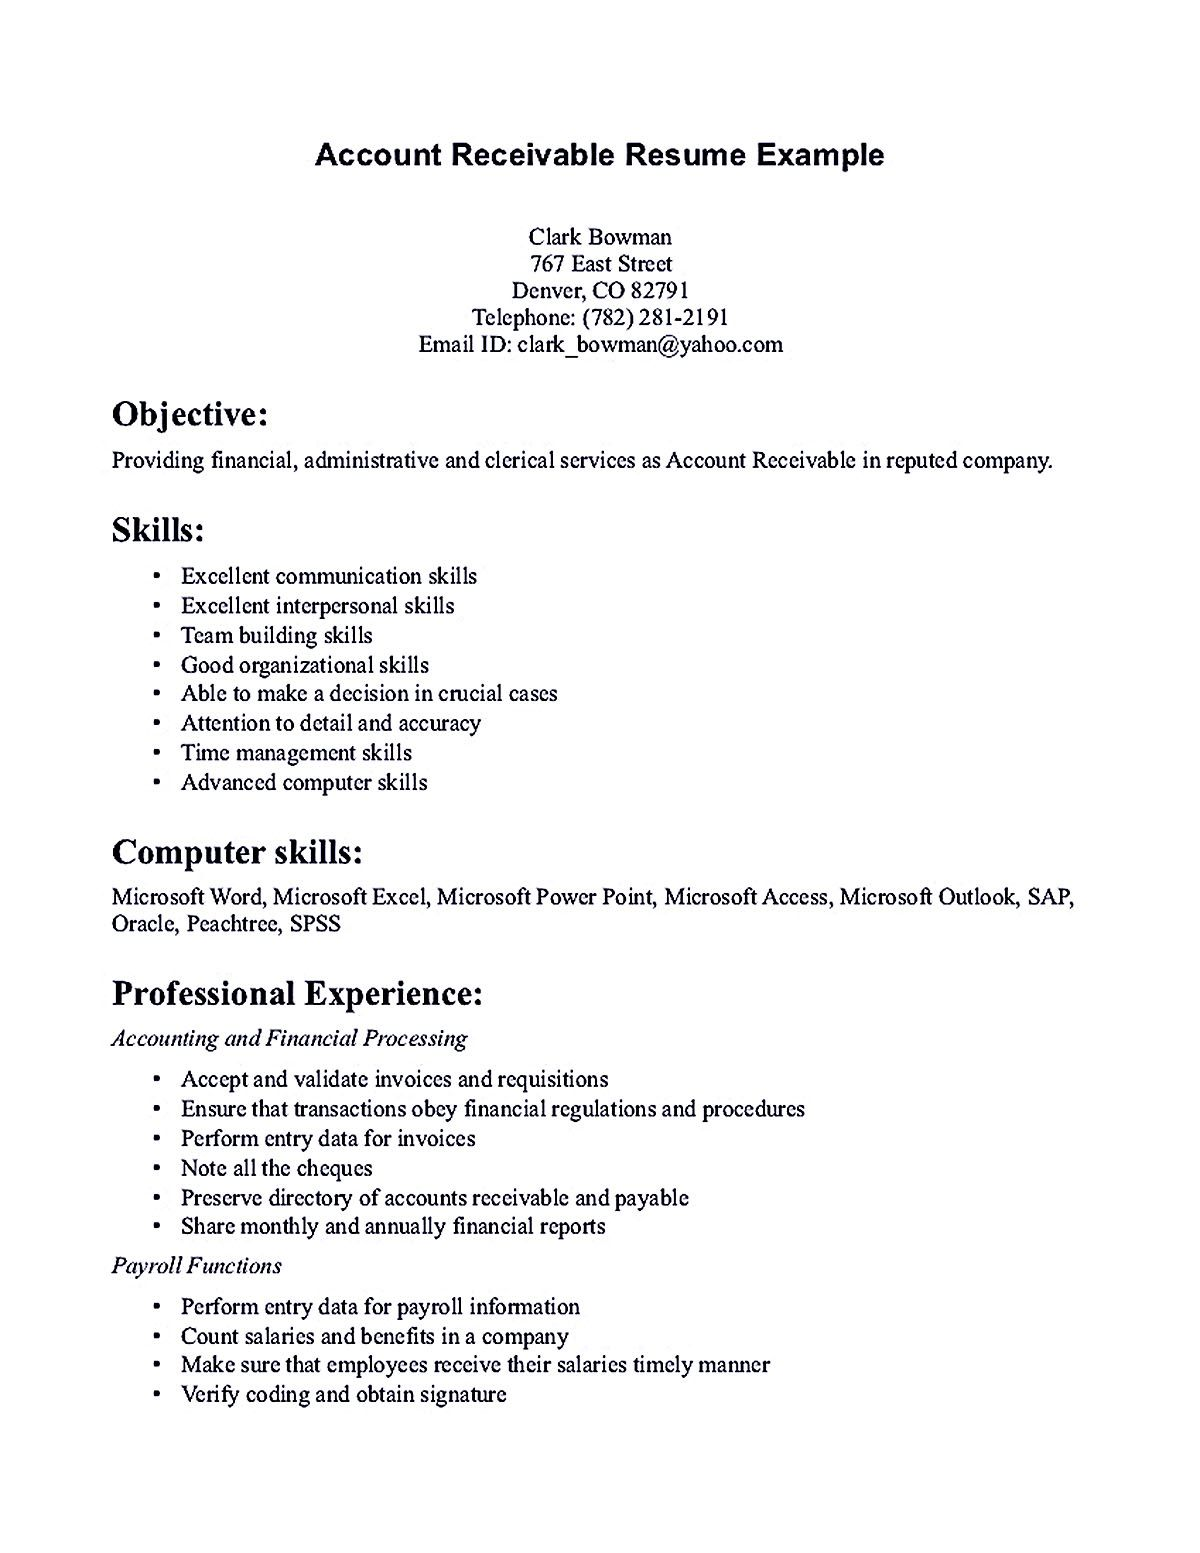 Professional Summary Resume Alluring Account Receivable Resume Shows Both Technical And Interpersonal Design Inspiration